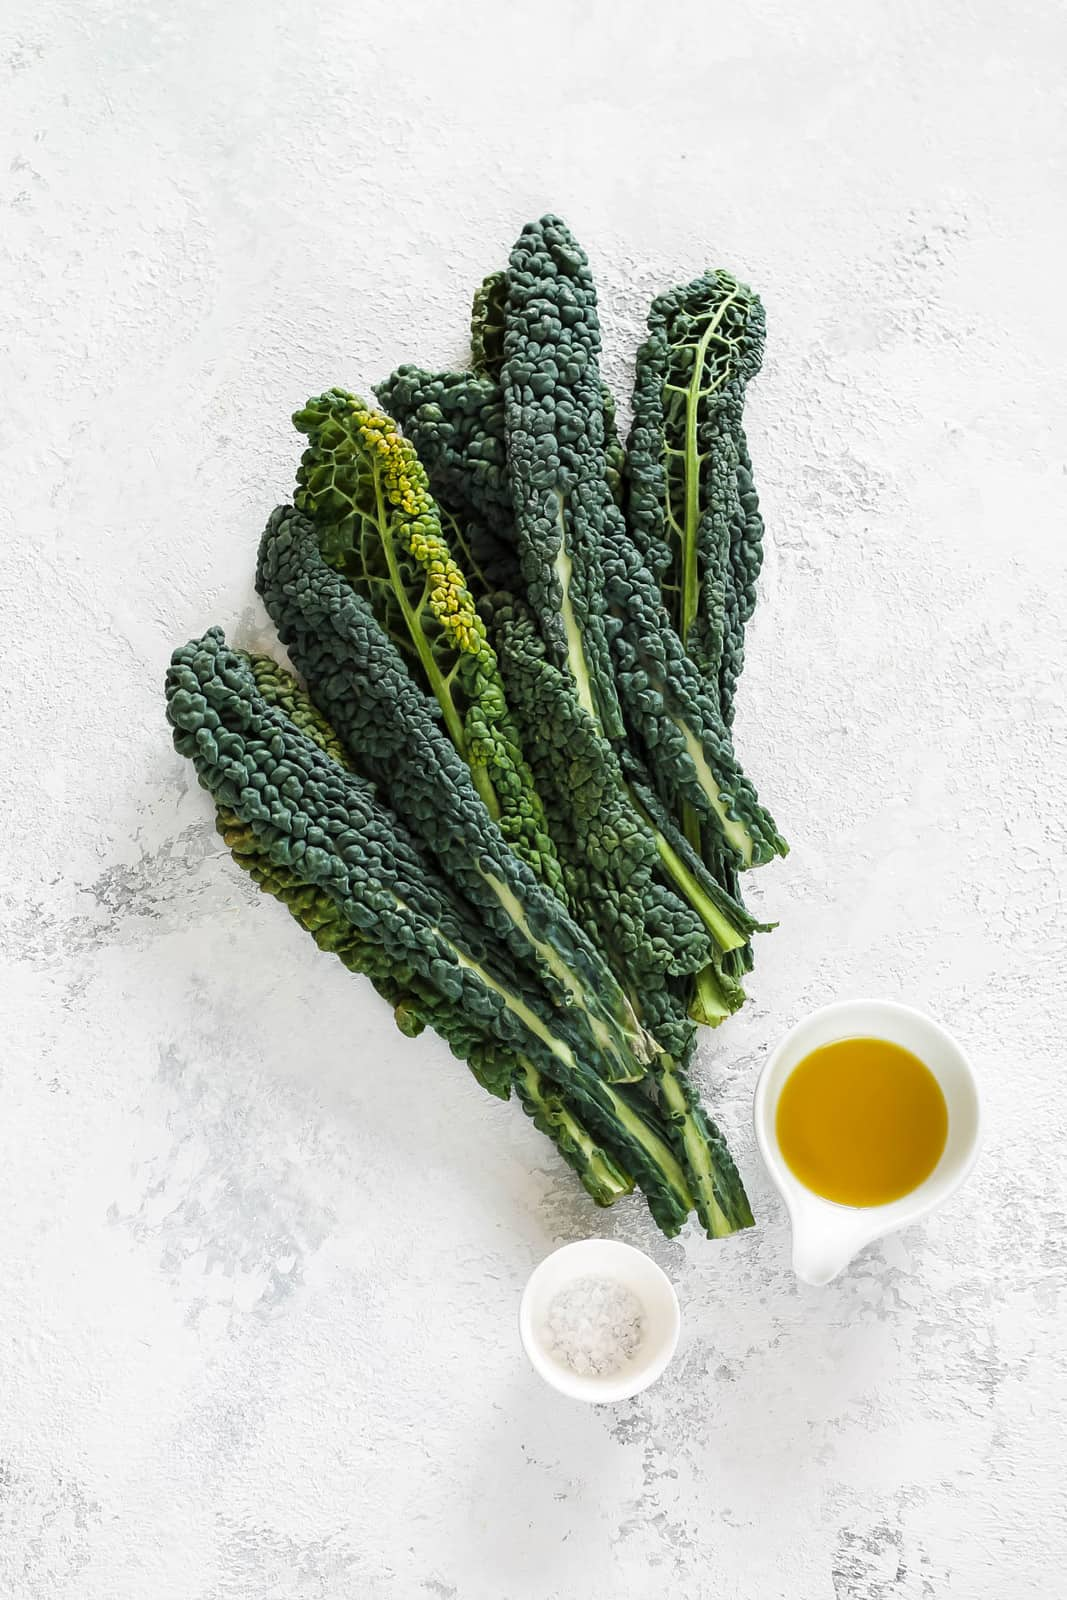 kale, olive oil, and salt on a grey background